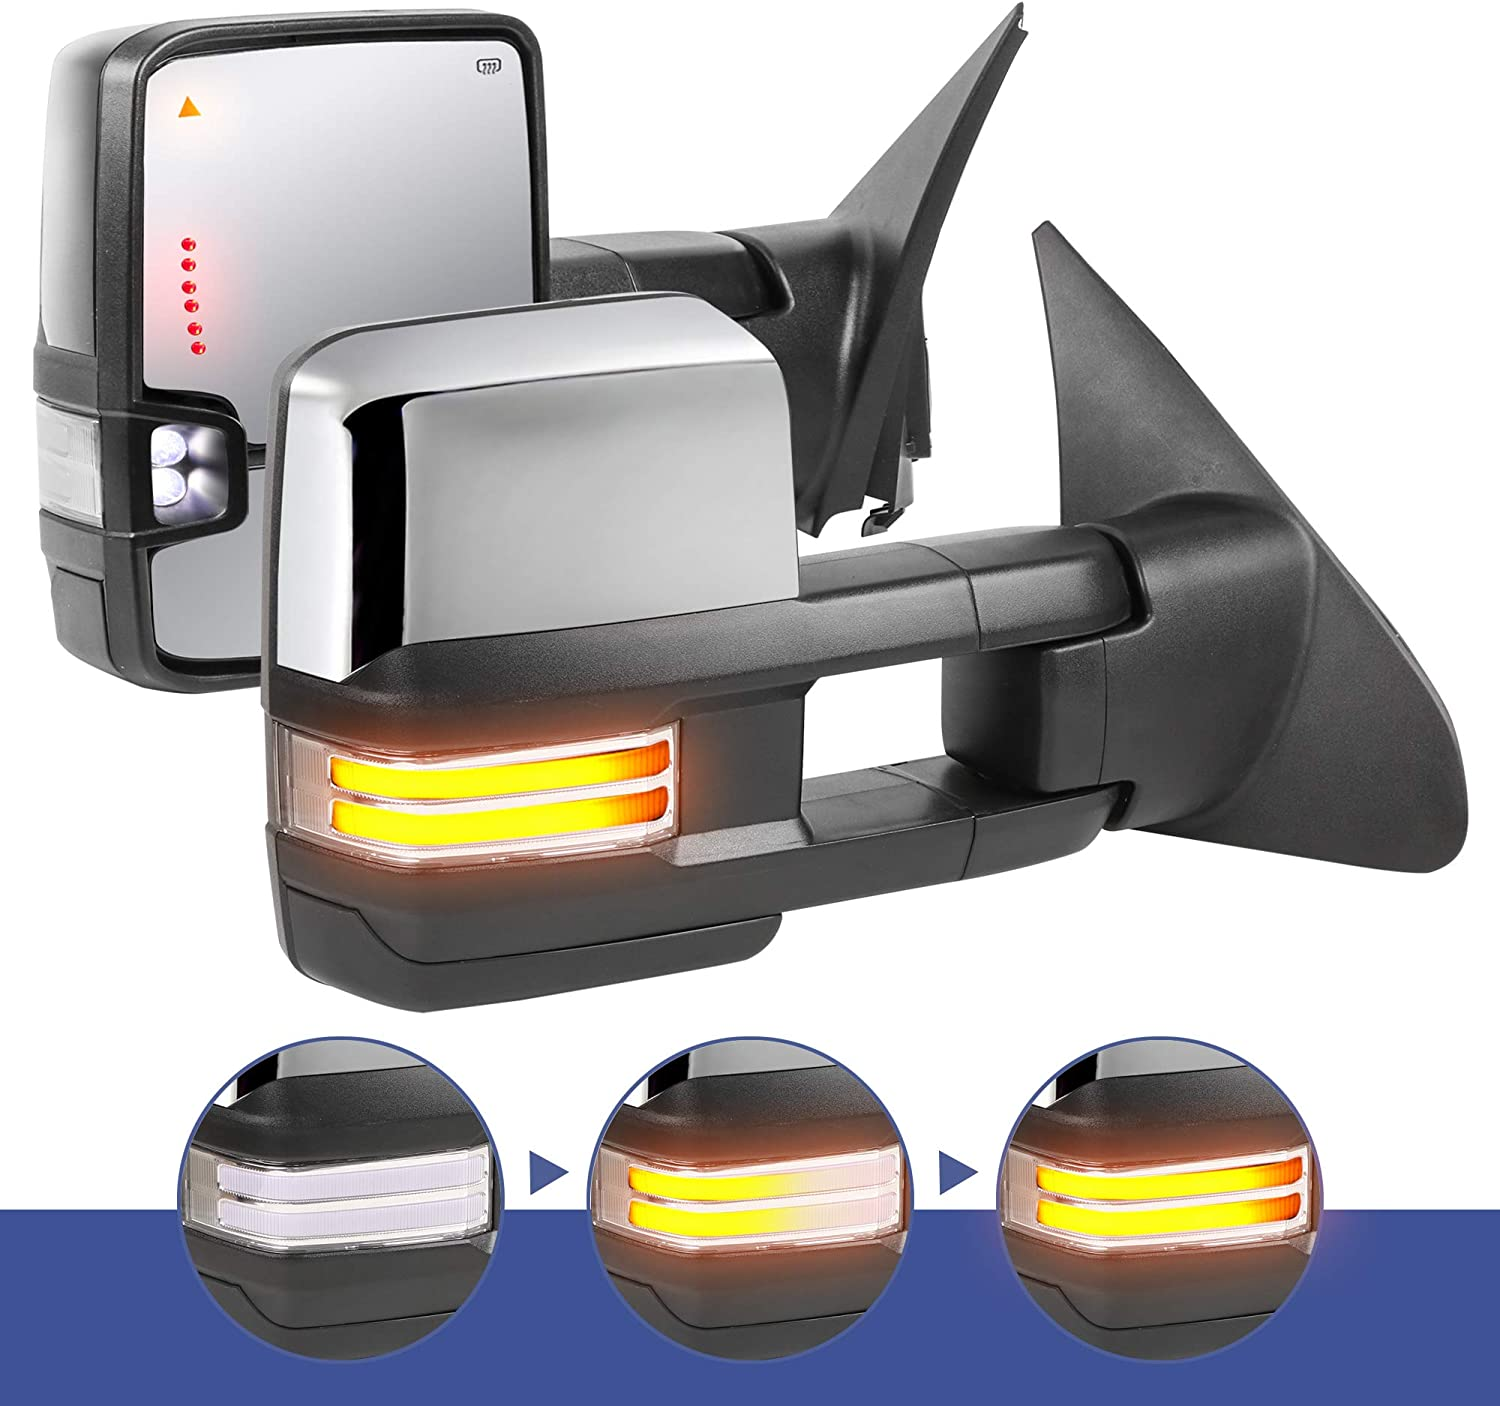 07-17 Towing Mirrors for 2007 2008 2009 2010 2011 2012 2013 2014 2015 2016 2017 Toyota Tundra with Power Glass Heated Turn Signal Light Running Light Blind Spot Light Extendable Fold Pair Set